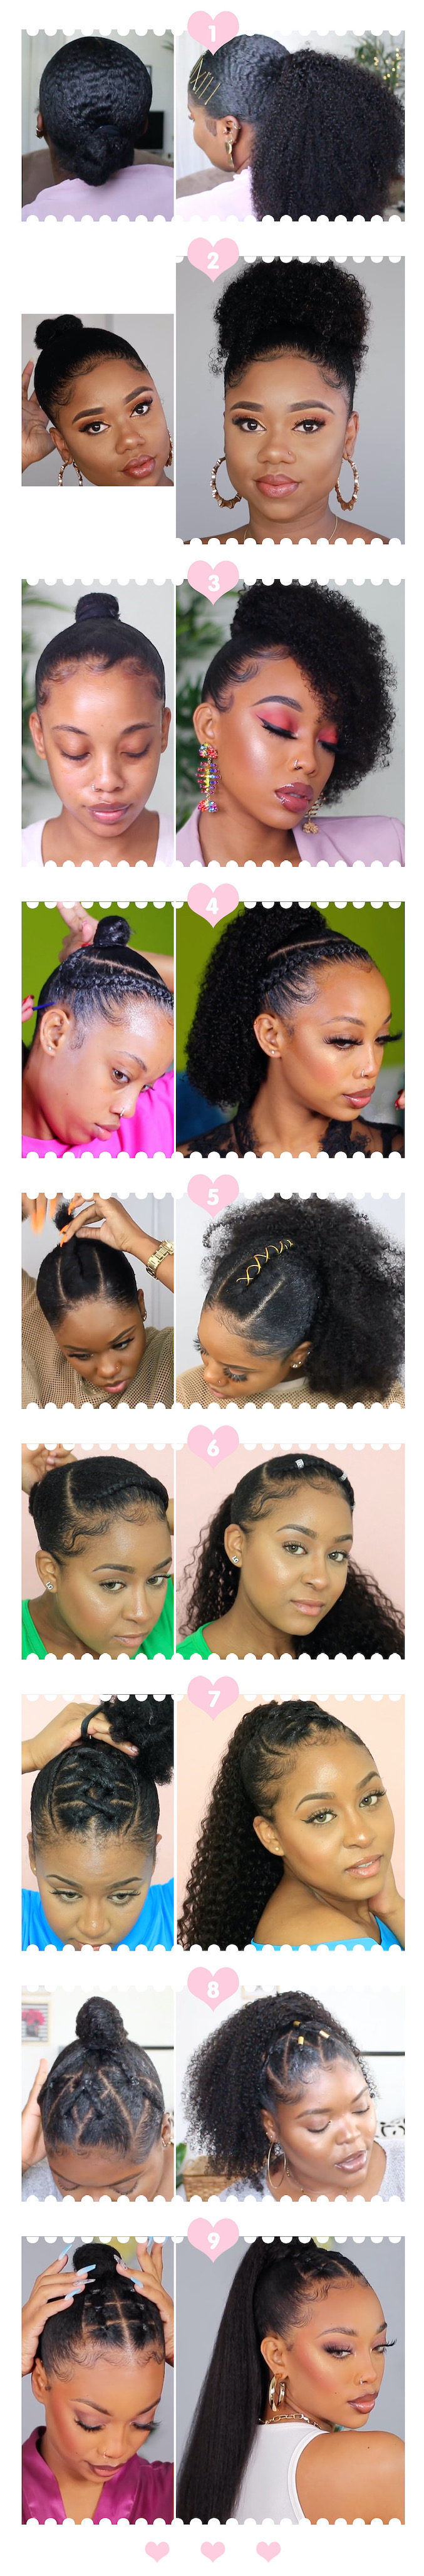 510b3121 86f9 4643 b64b 8482a765d82a - What Are The Benefits of BetterLength 100% Virgin Human Hair Drawstring Ponytail